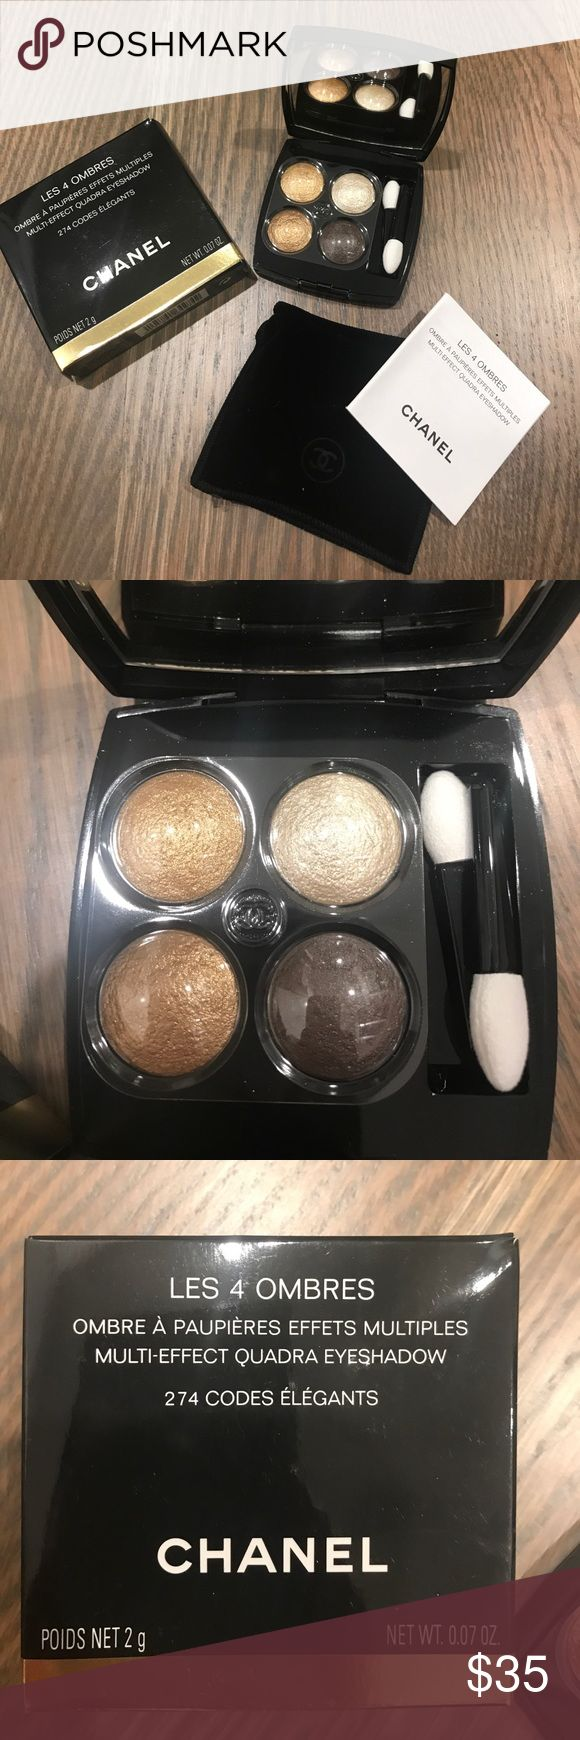 Chanel Les Ombres 4 Eyeshadow Palette - NEW! Four gorgeous metallic neutrals in mirrored compact. This comes new in box with velvet pouch, never used. CHANEL Makeup Eyeshadow